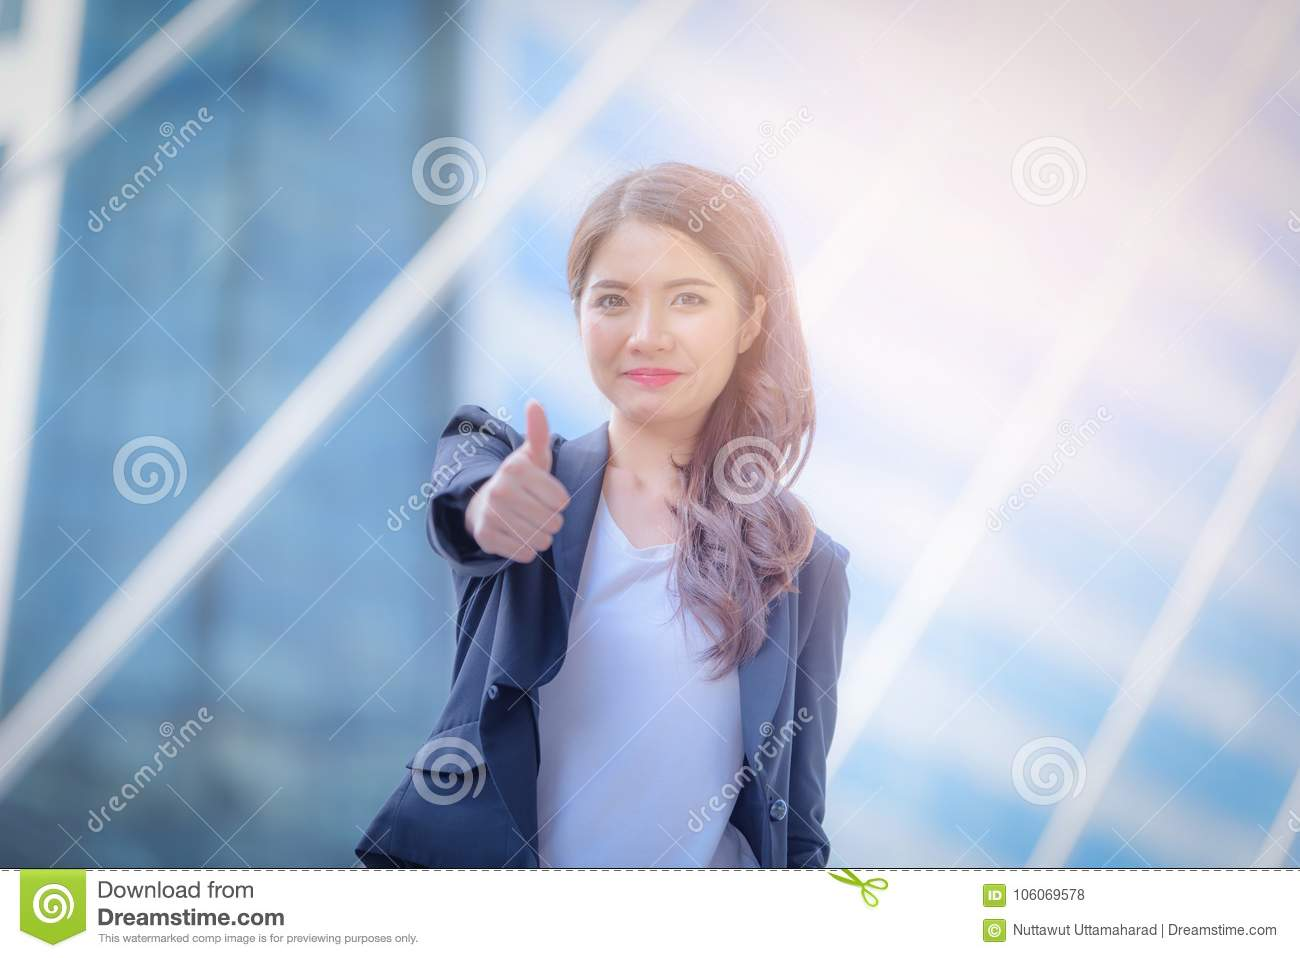 Portrait of business woman smiling and shows thumbs up on blurred city background. Business success concept.